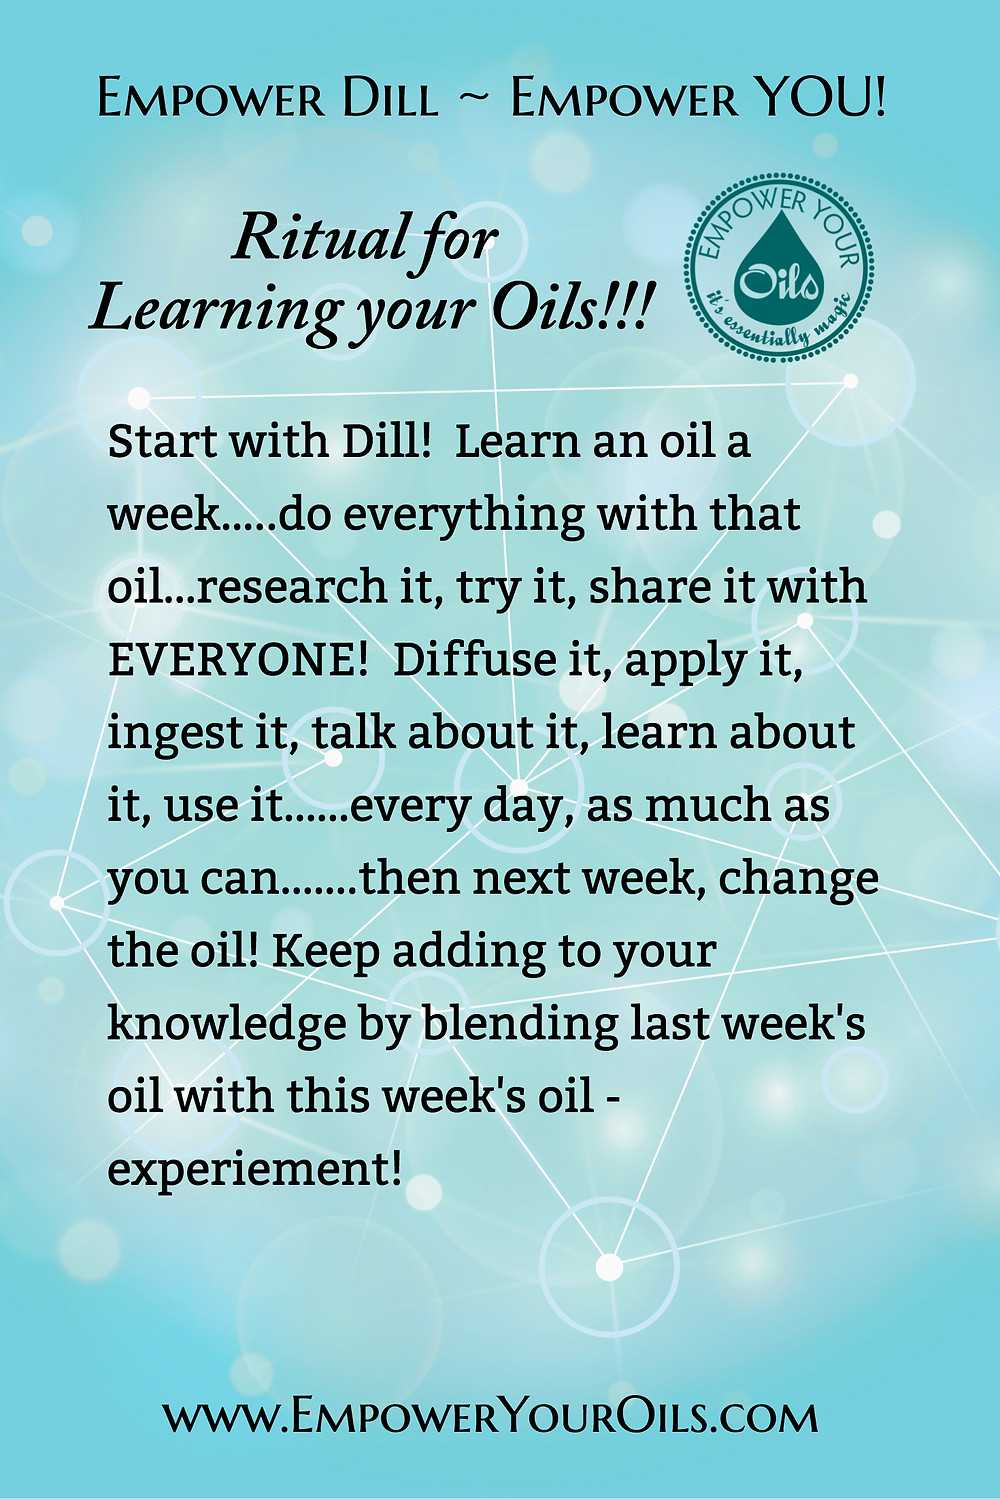 Empower Dill- Empower You